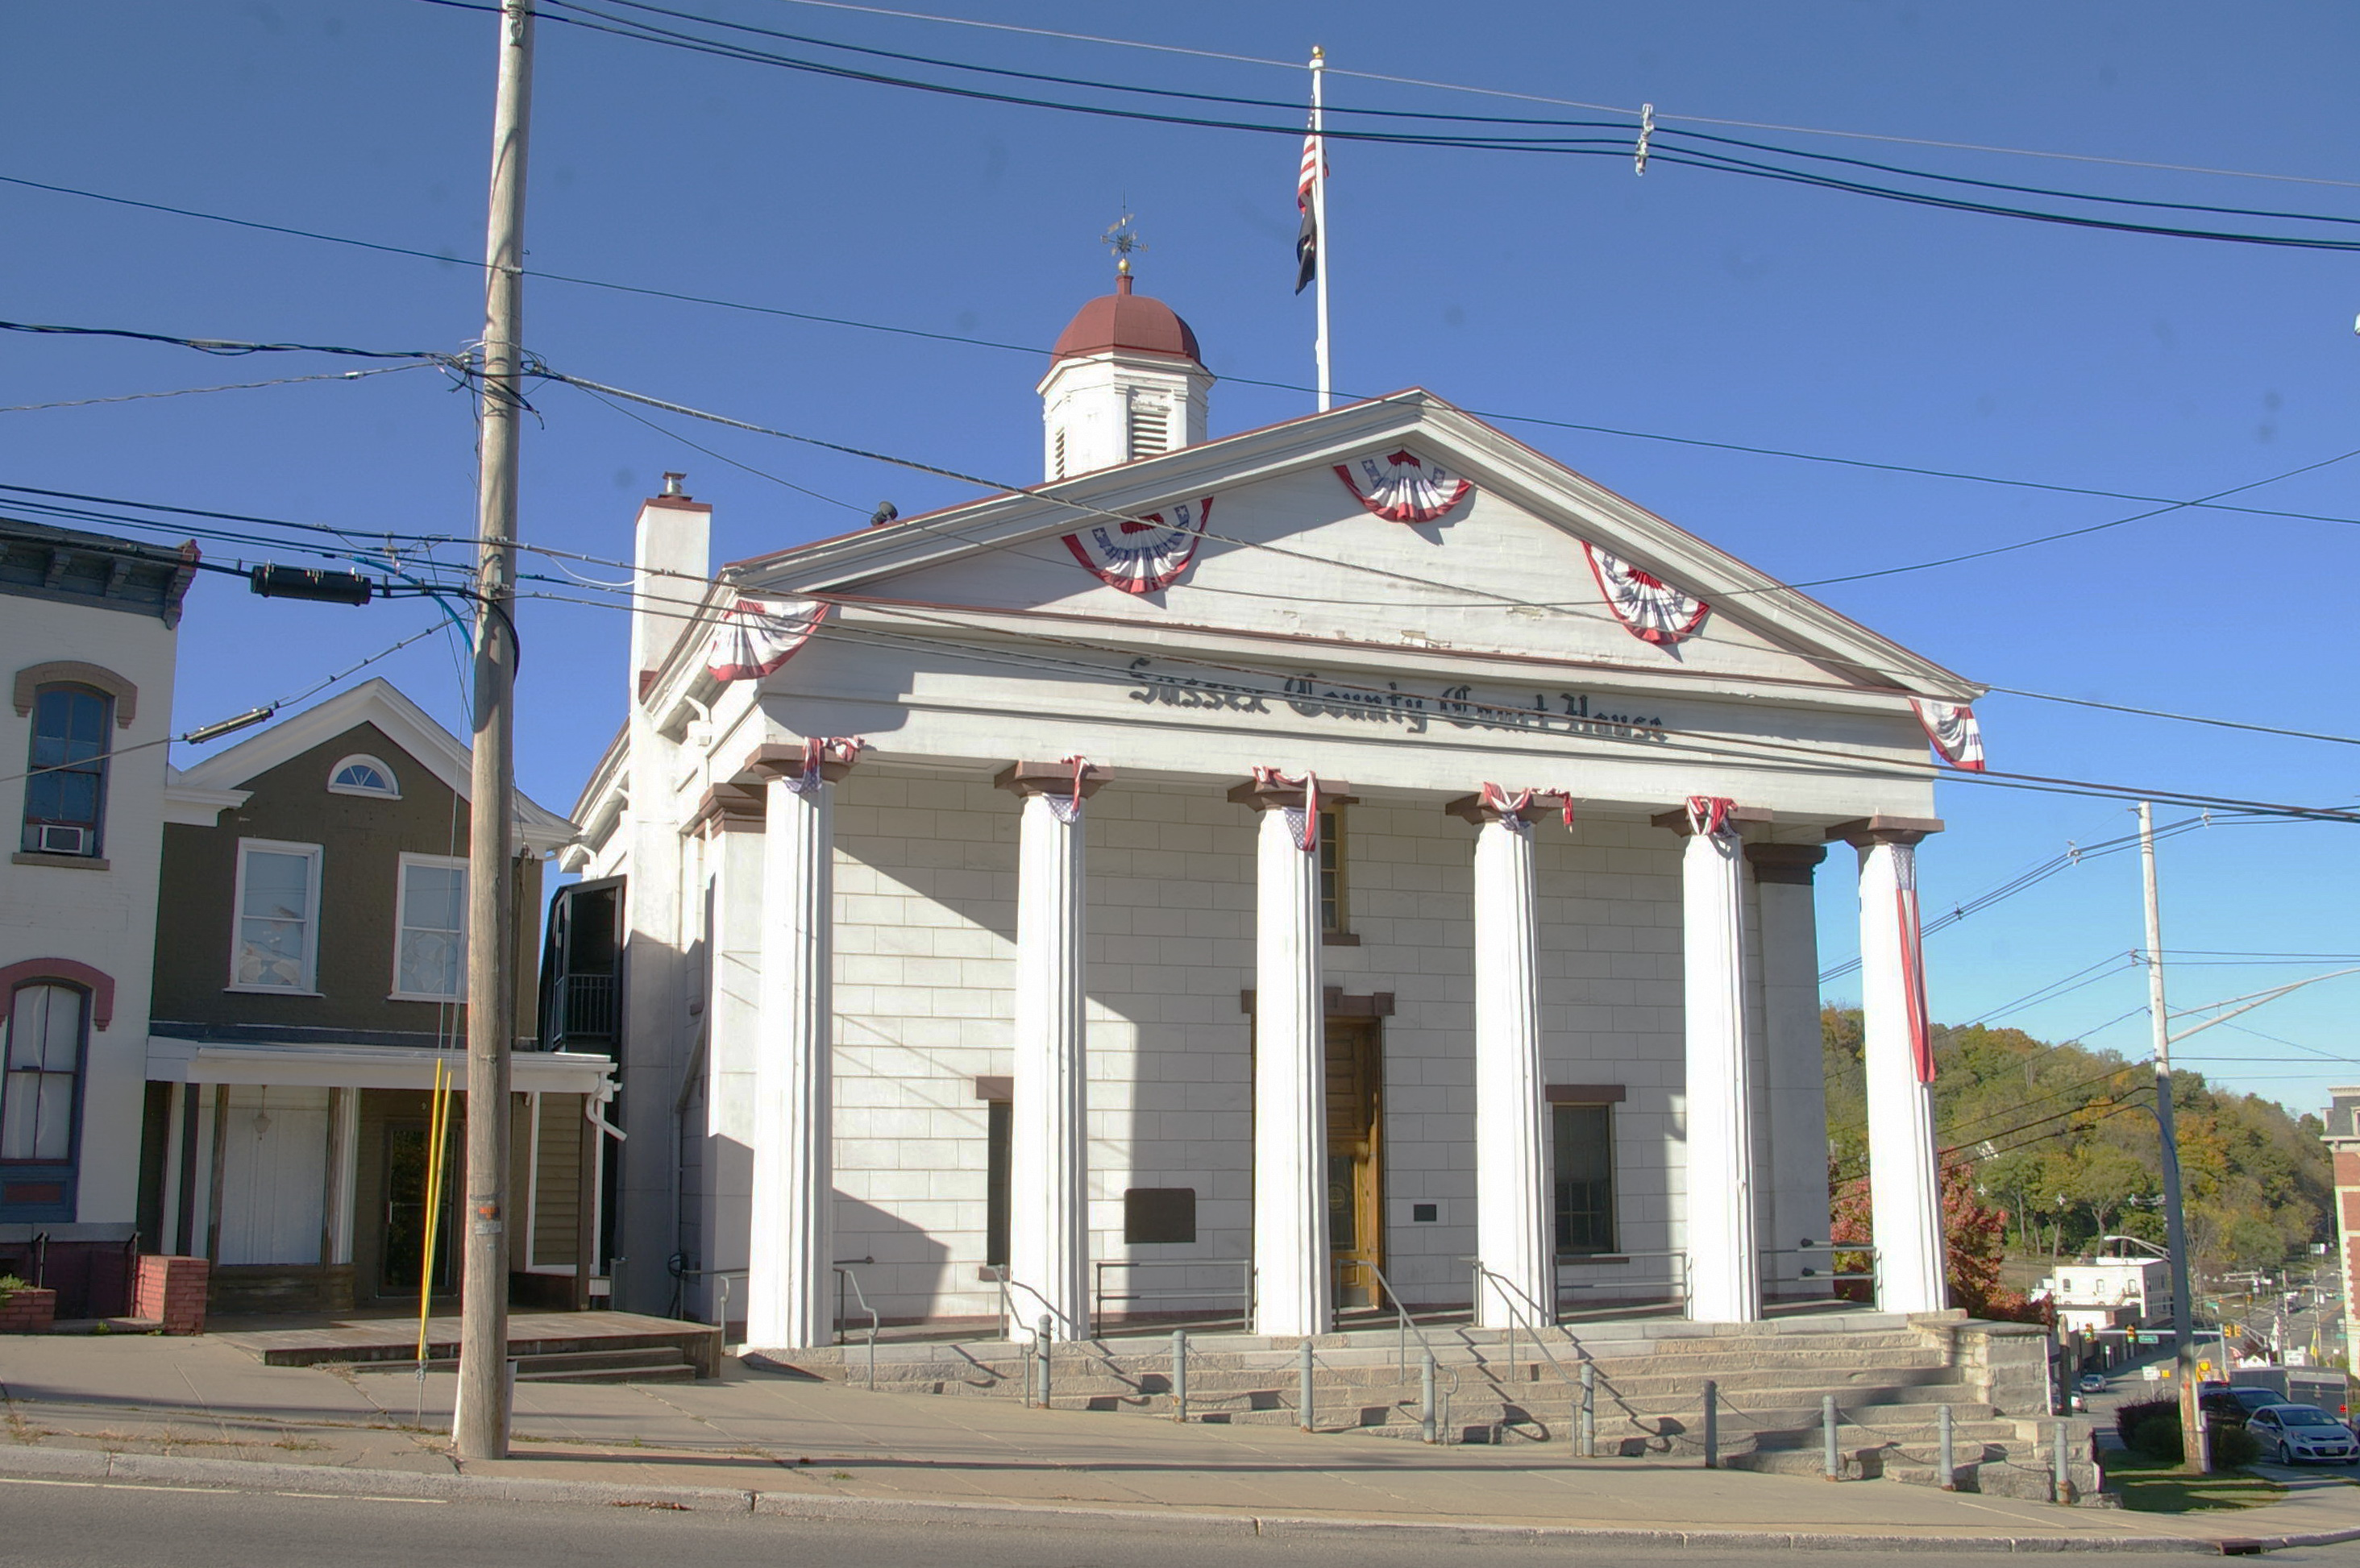 Sussex County Us Courthouses